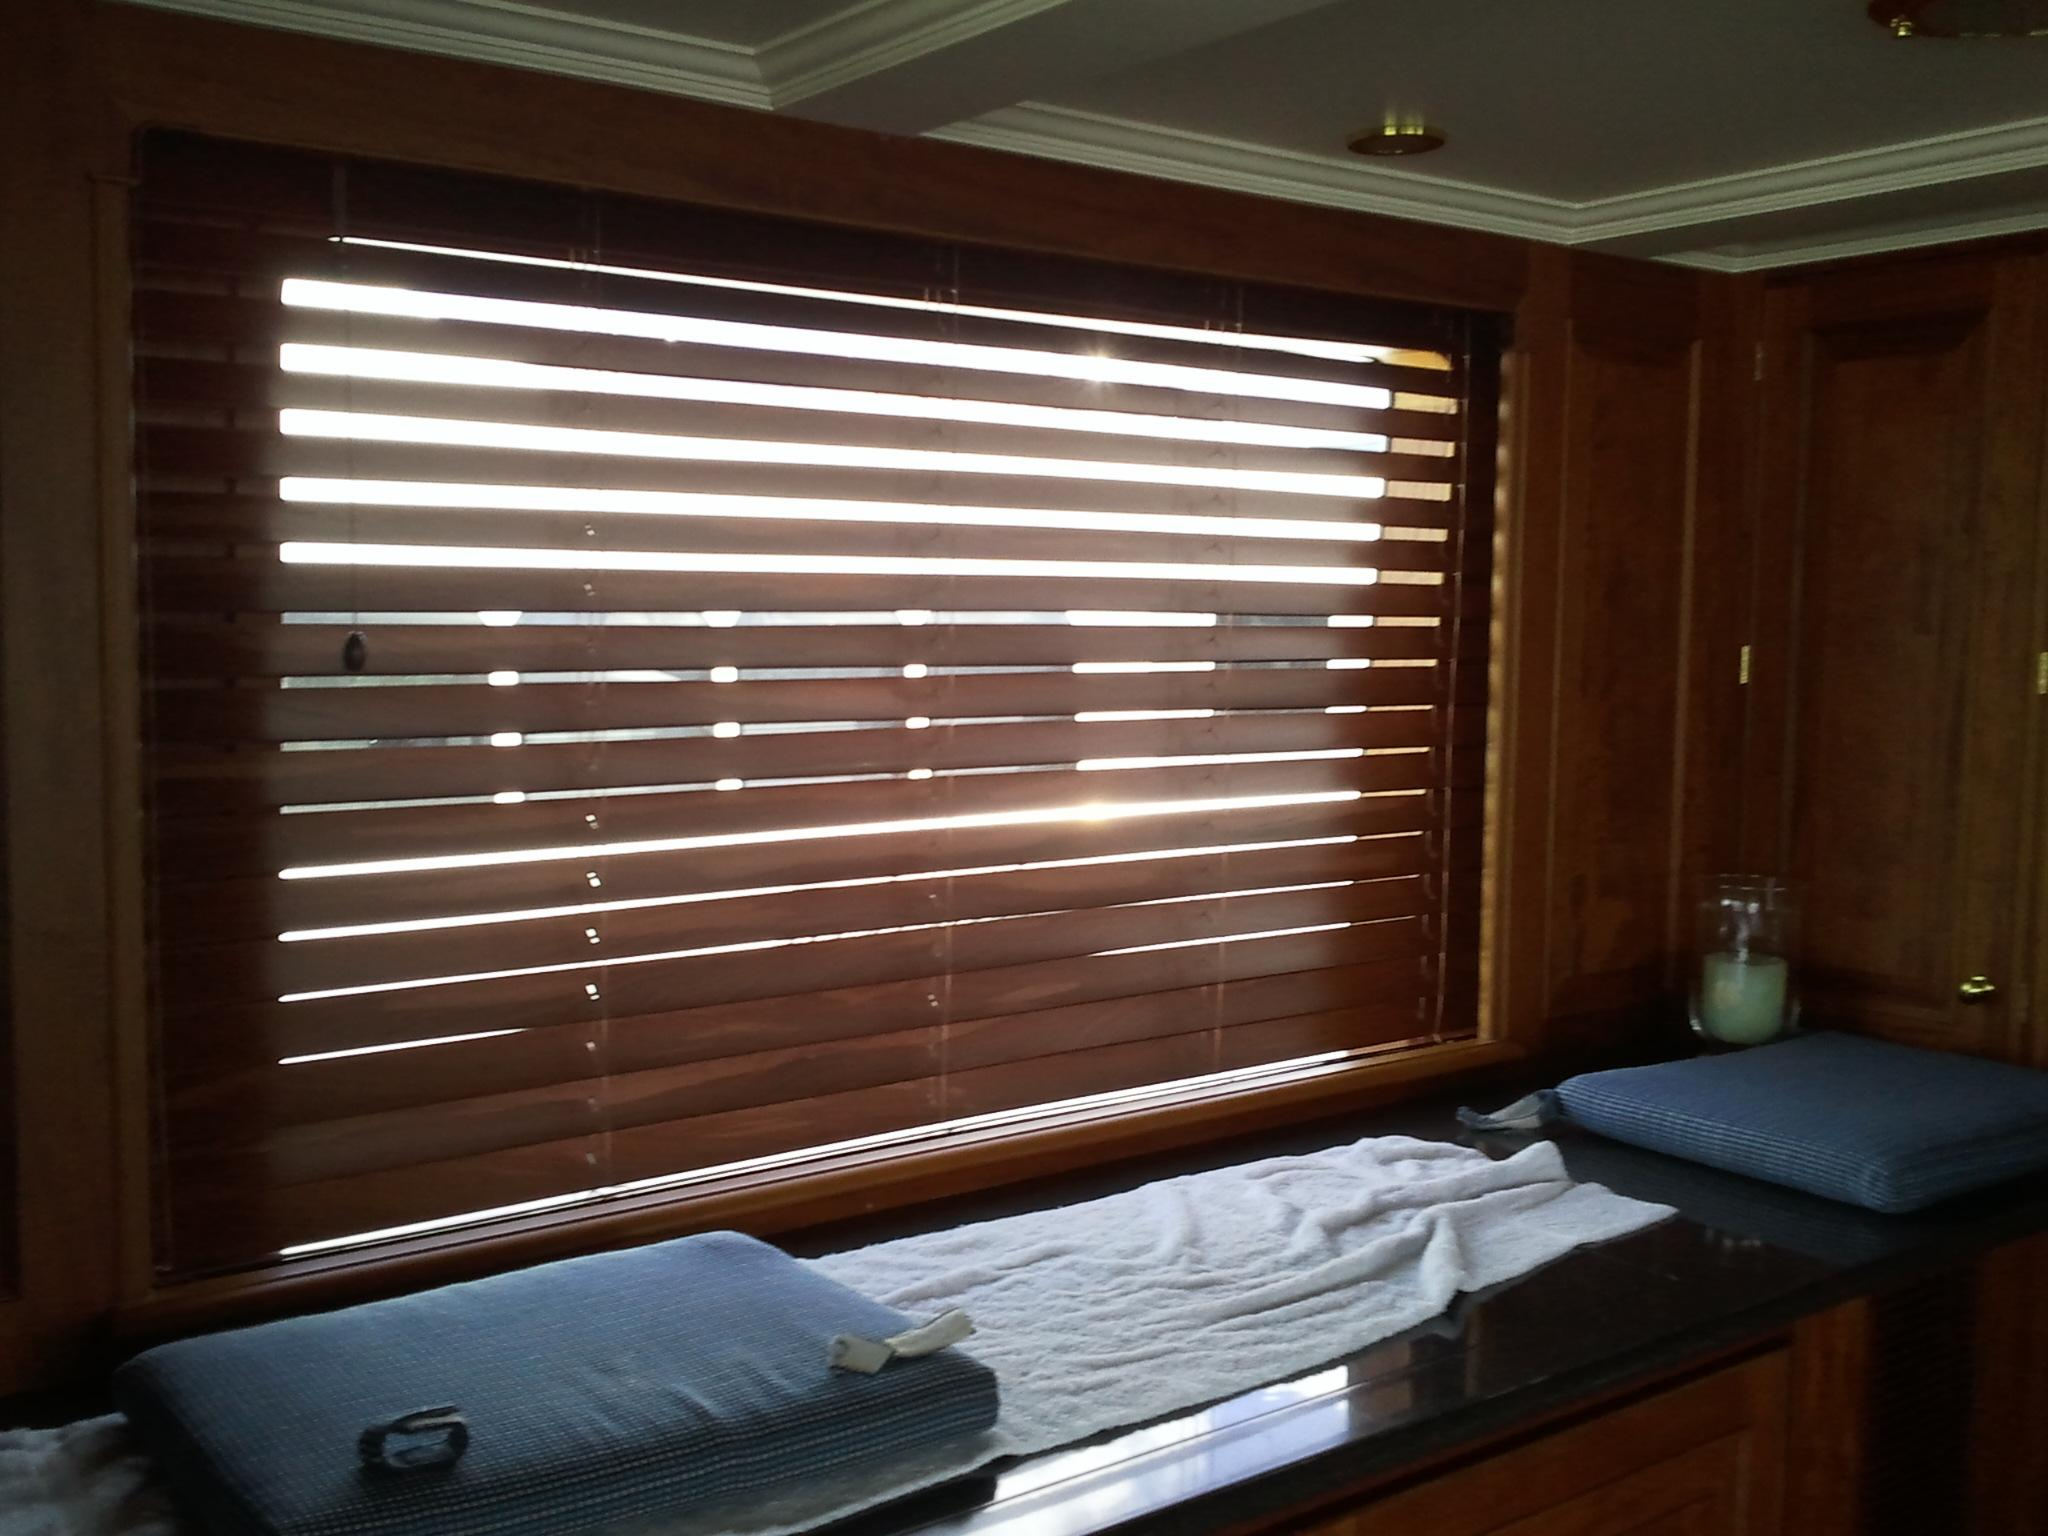 perth me brisbane repairs calgary near cleaning cheap northside blinds coast repair cleaners blind gold